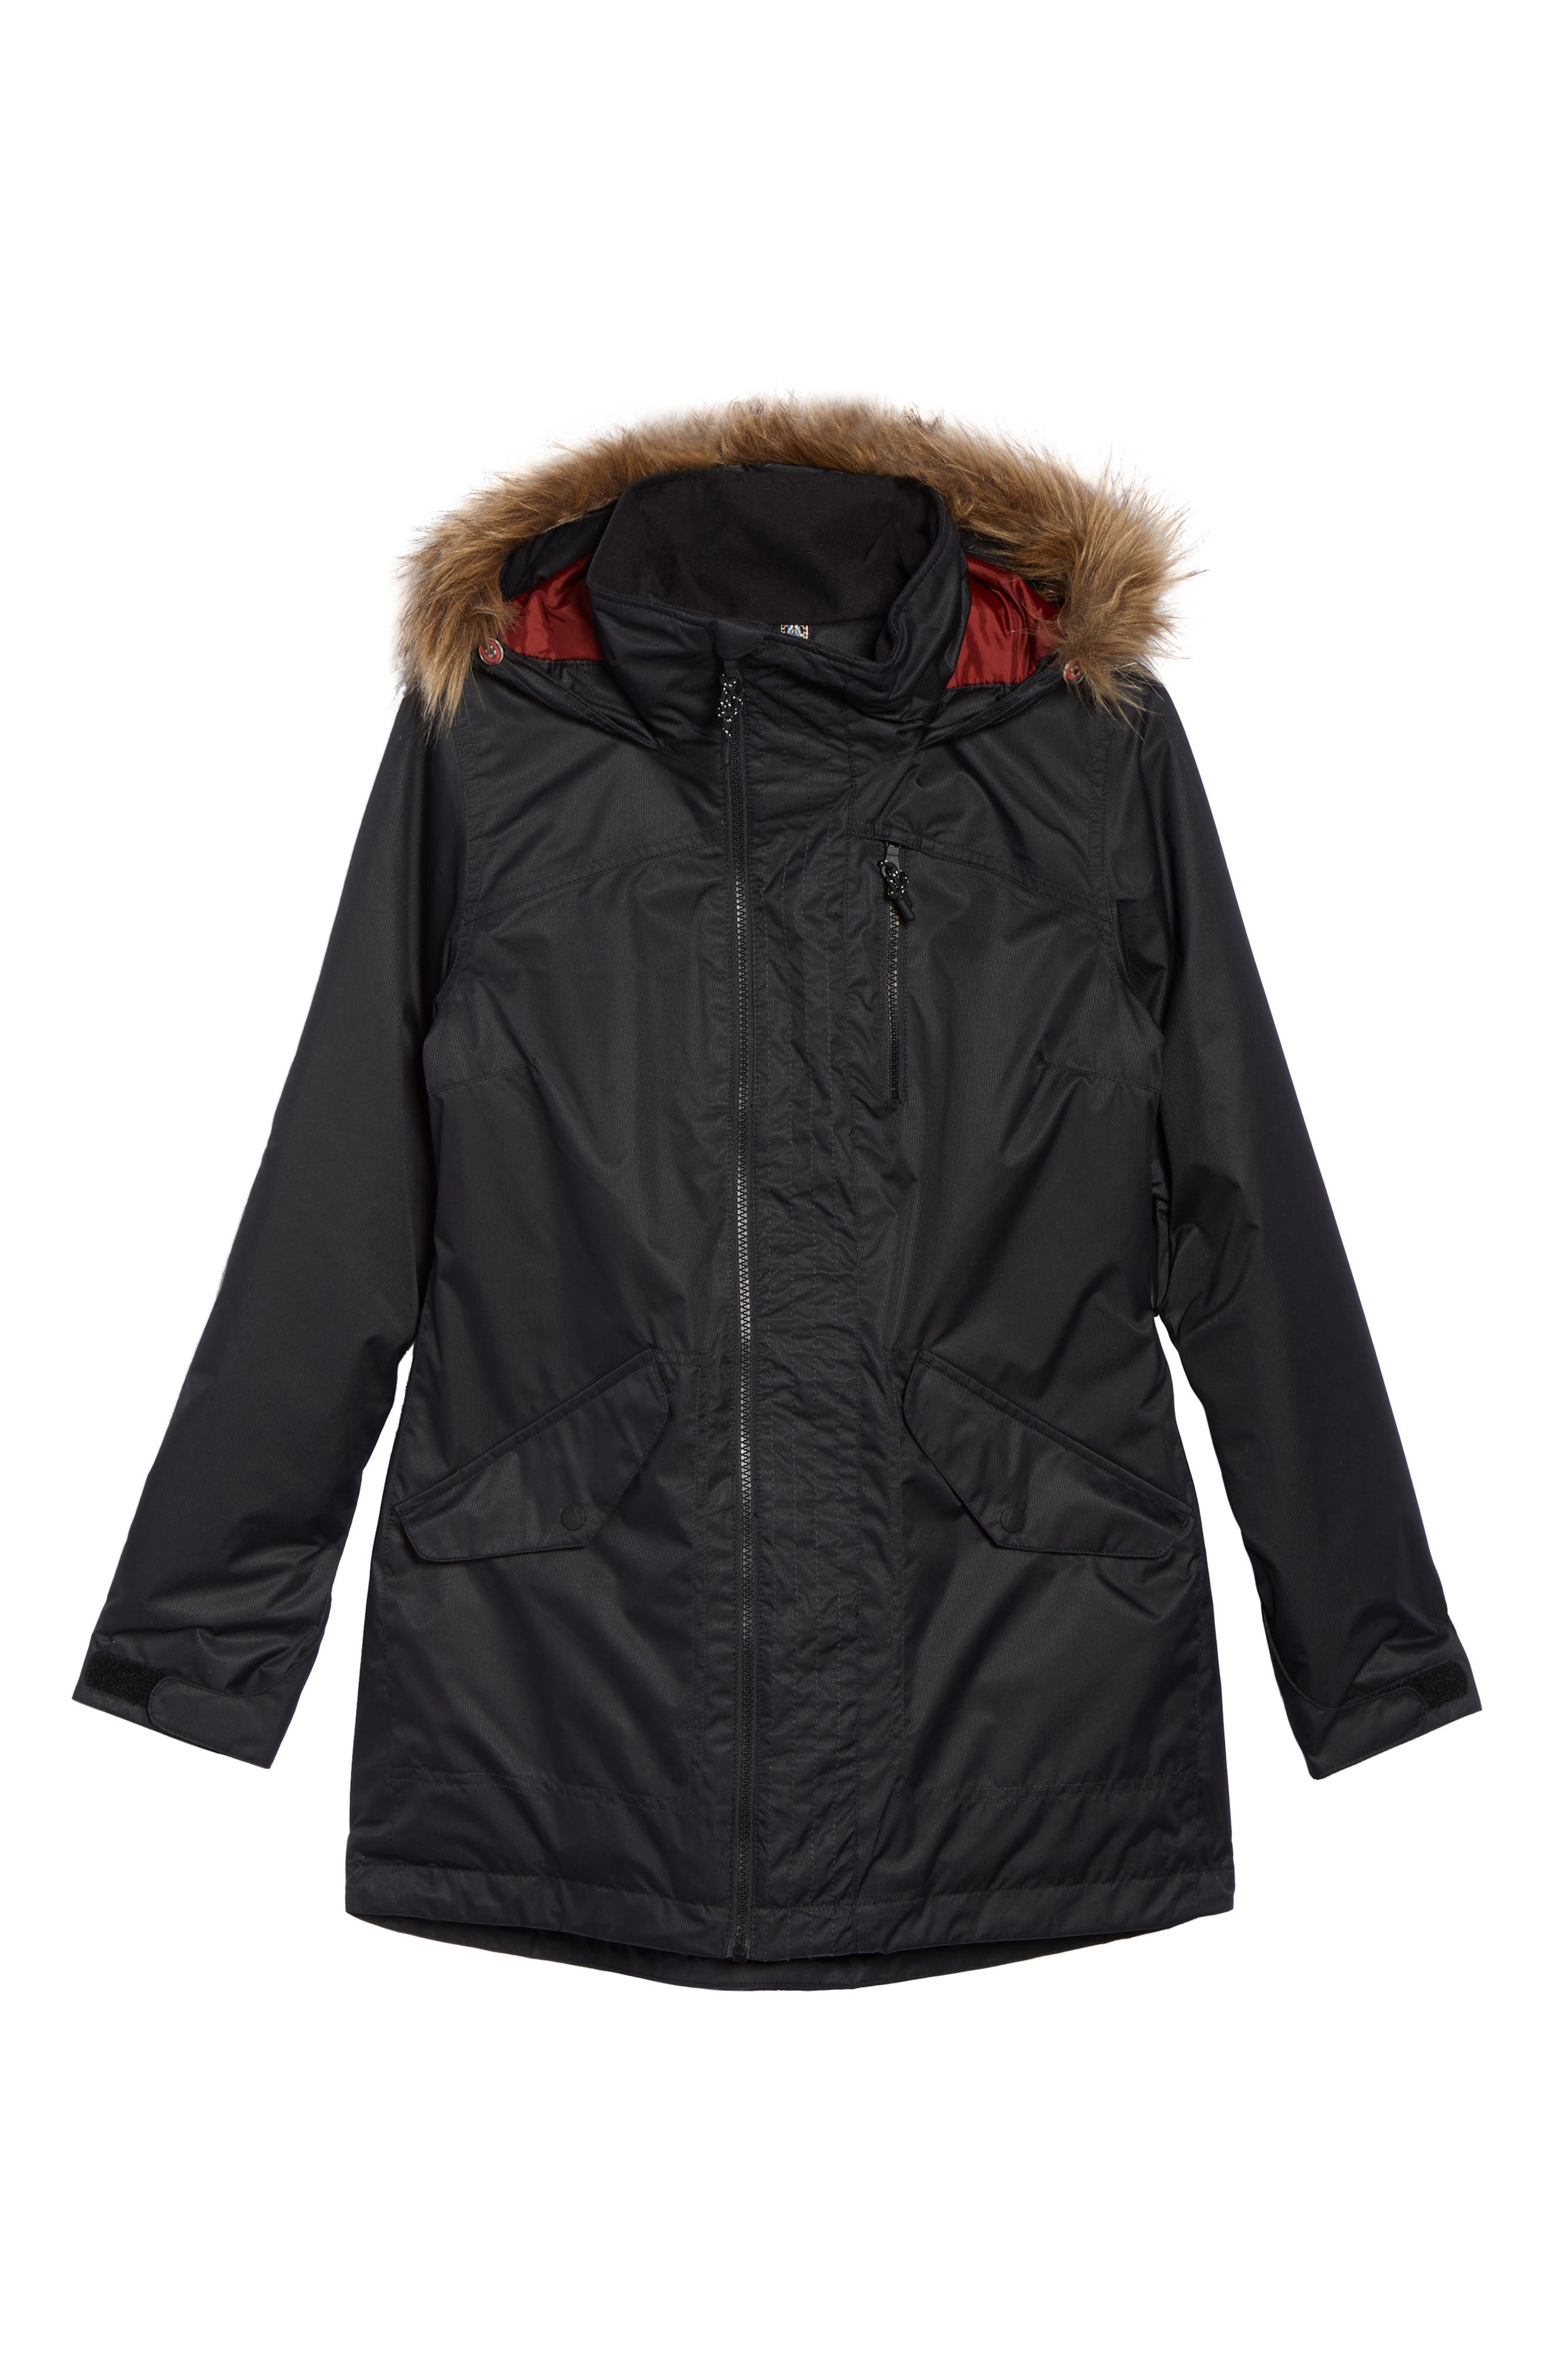 Hazel Waterproof Hooded Jacket with Removable Faux Fur Trim,                             Alternate thumbnail 5, color,                             001